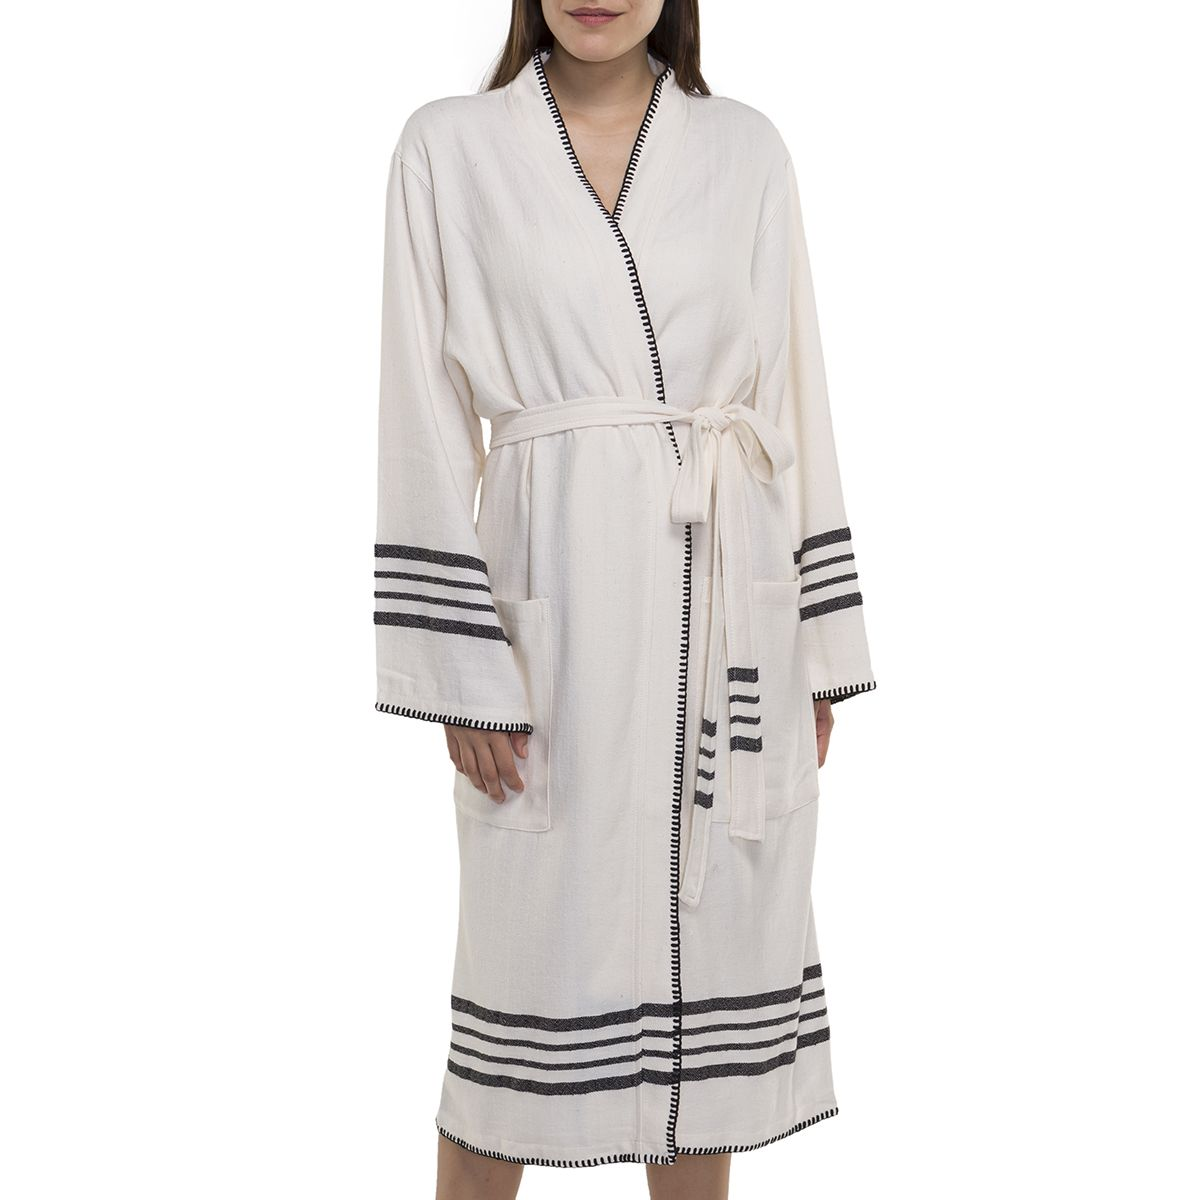 Bathrobe Coban Sultan / Black Stripes